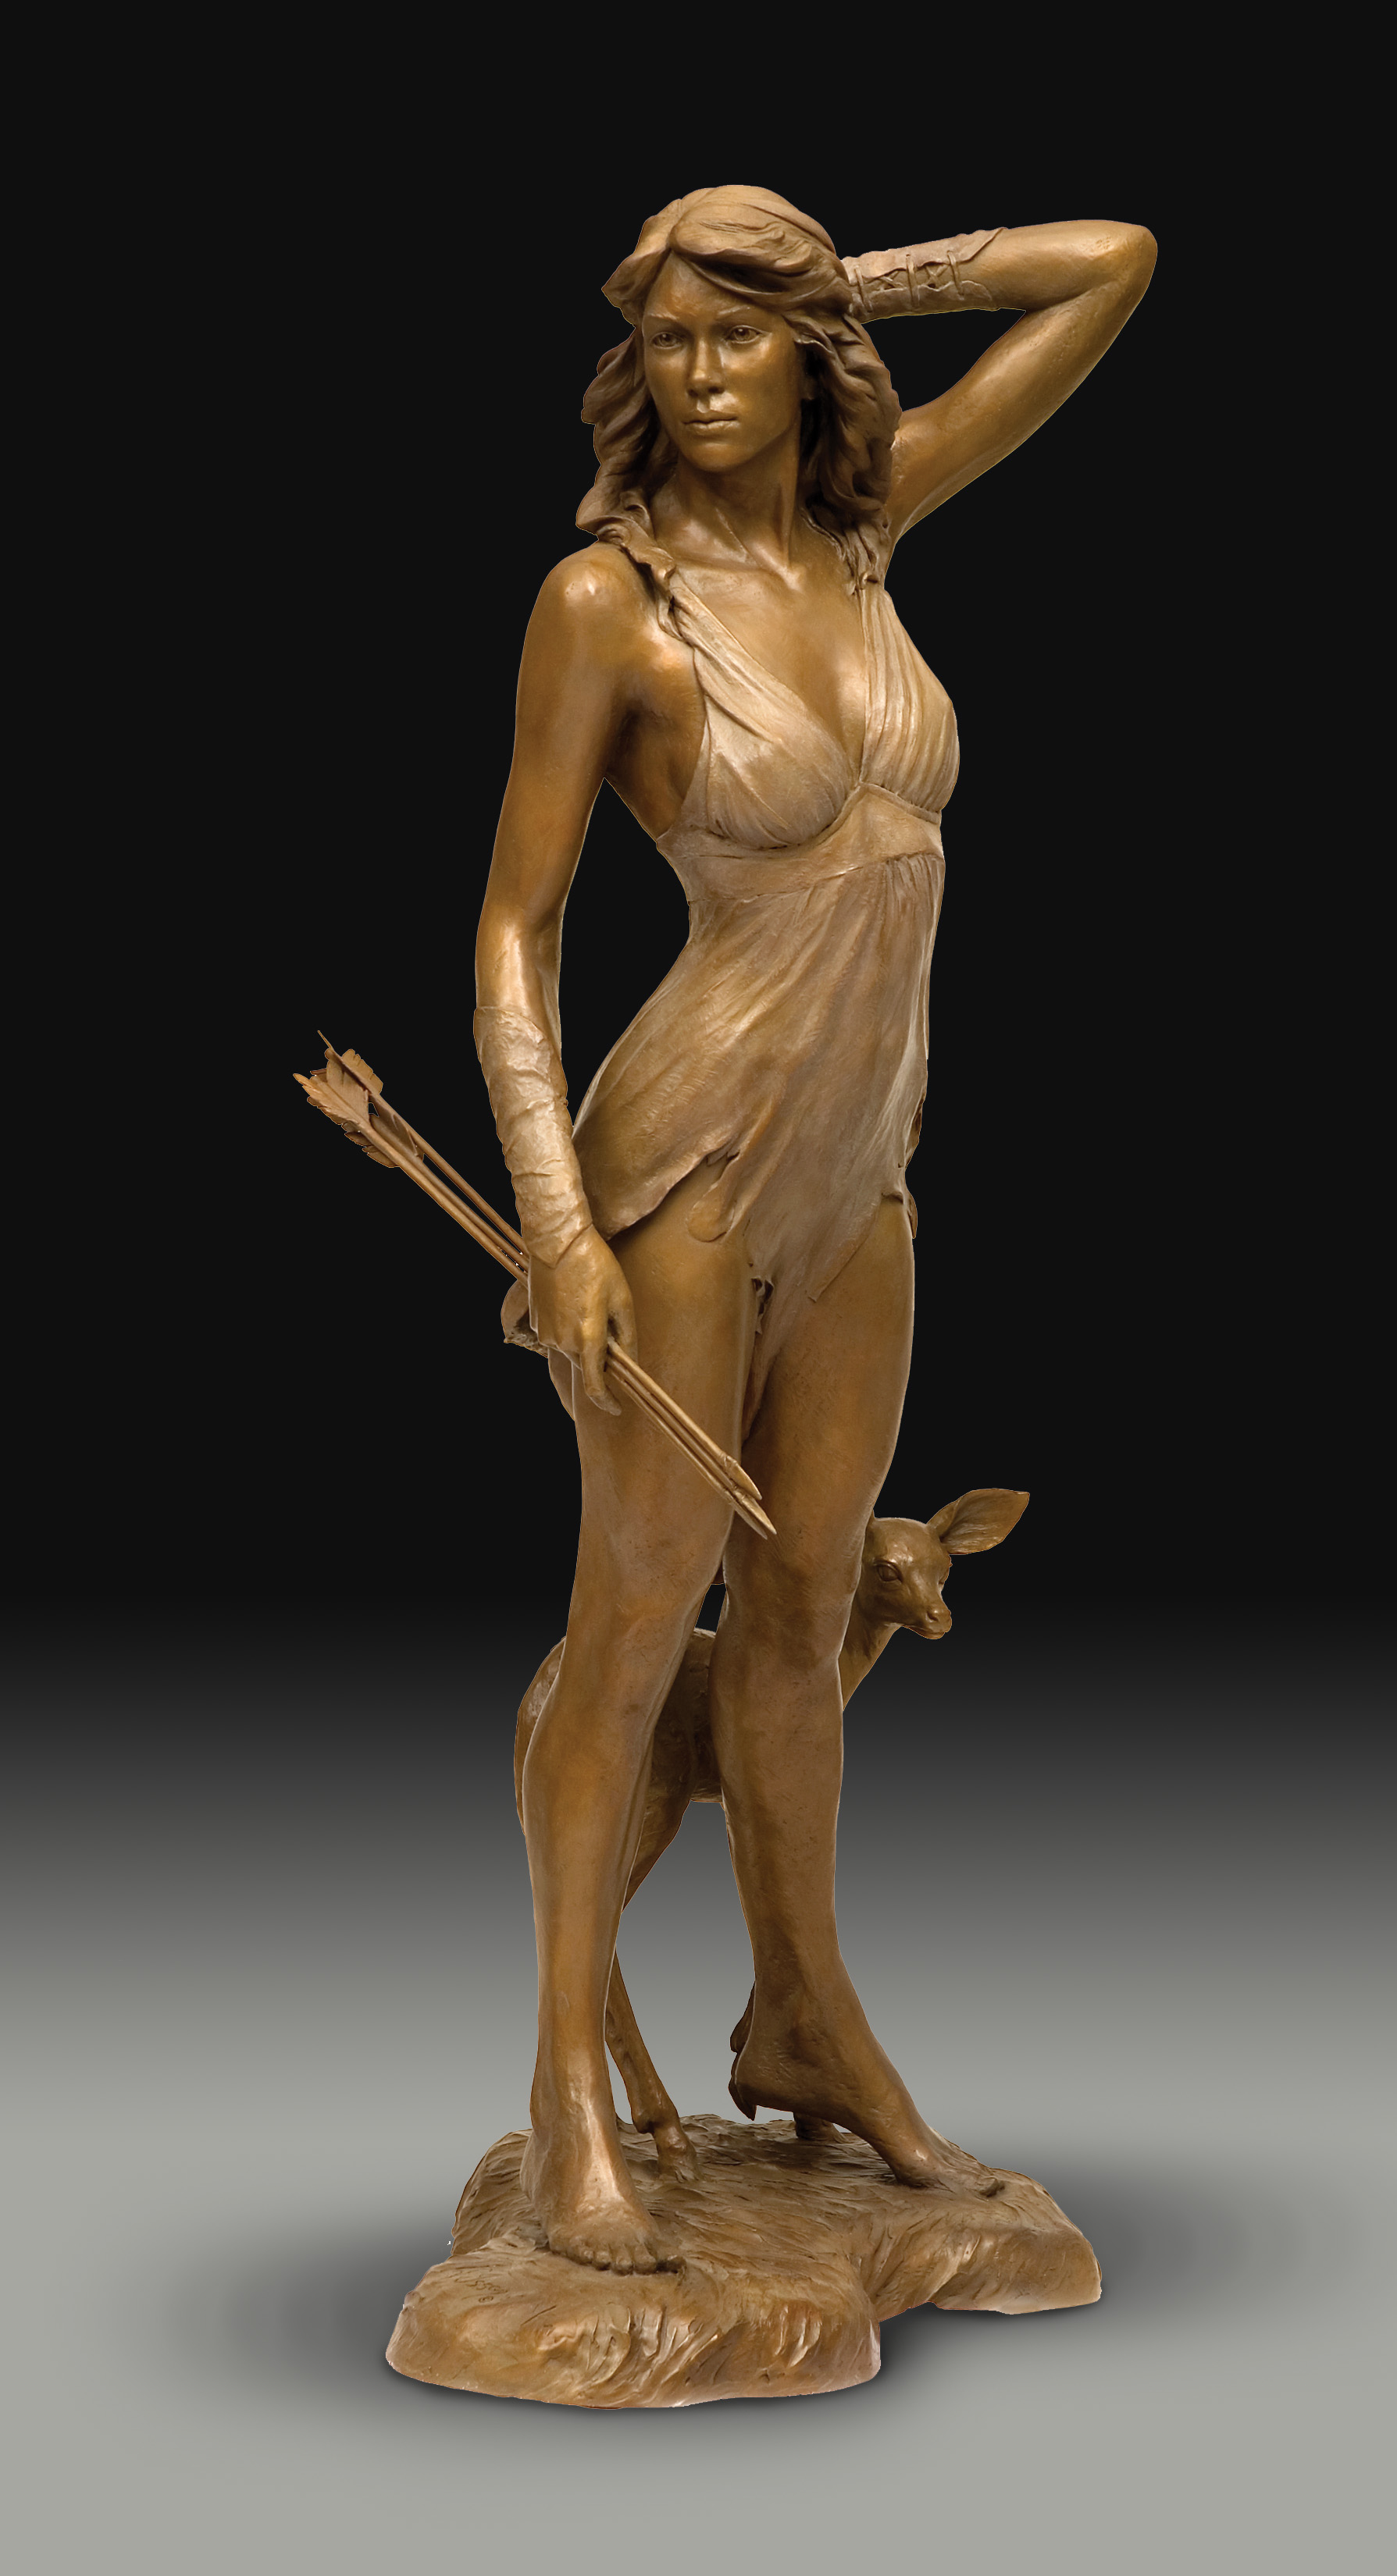 Figurative Bronze Sculpture by Victor Issa